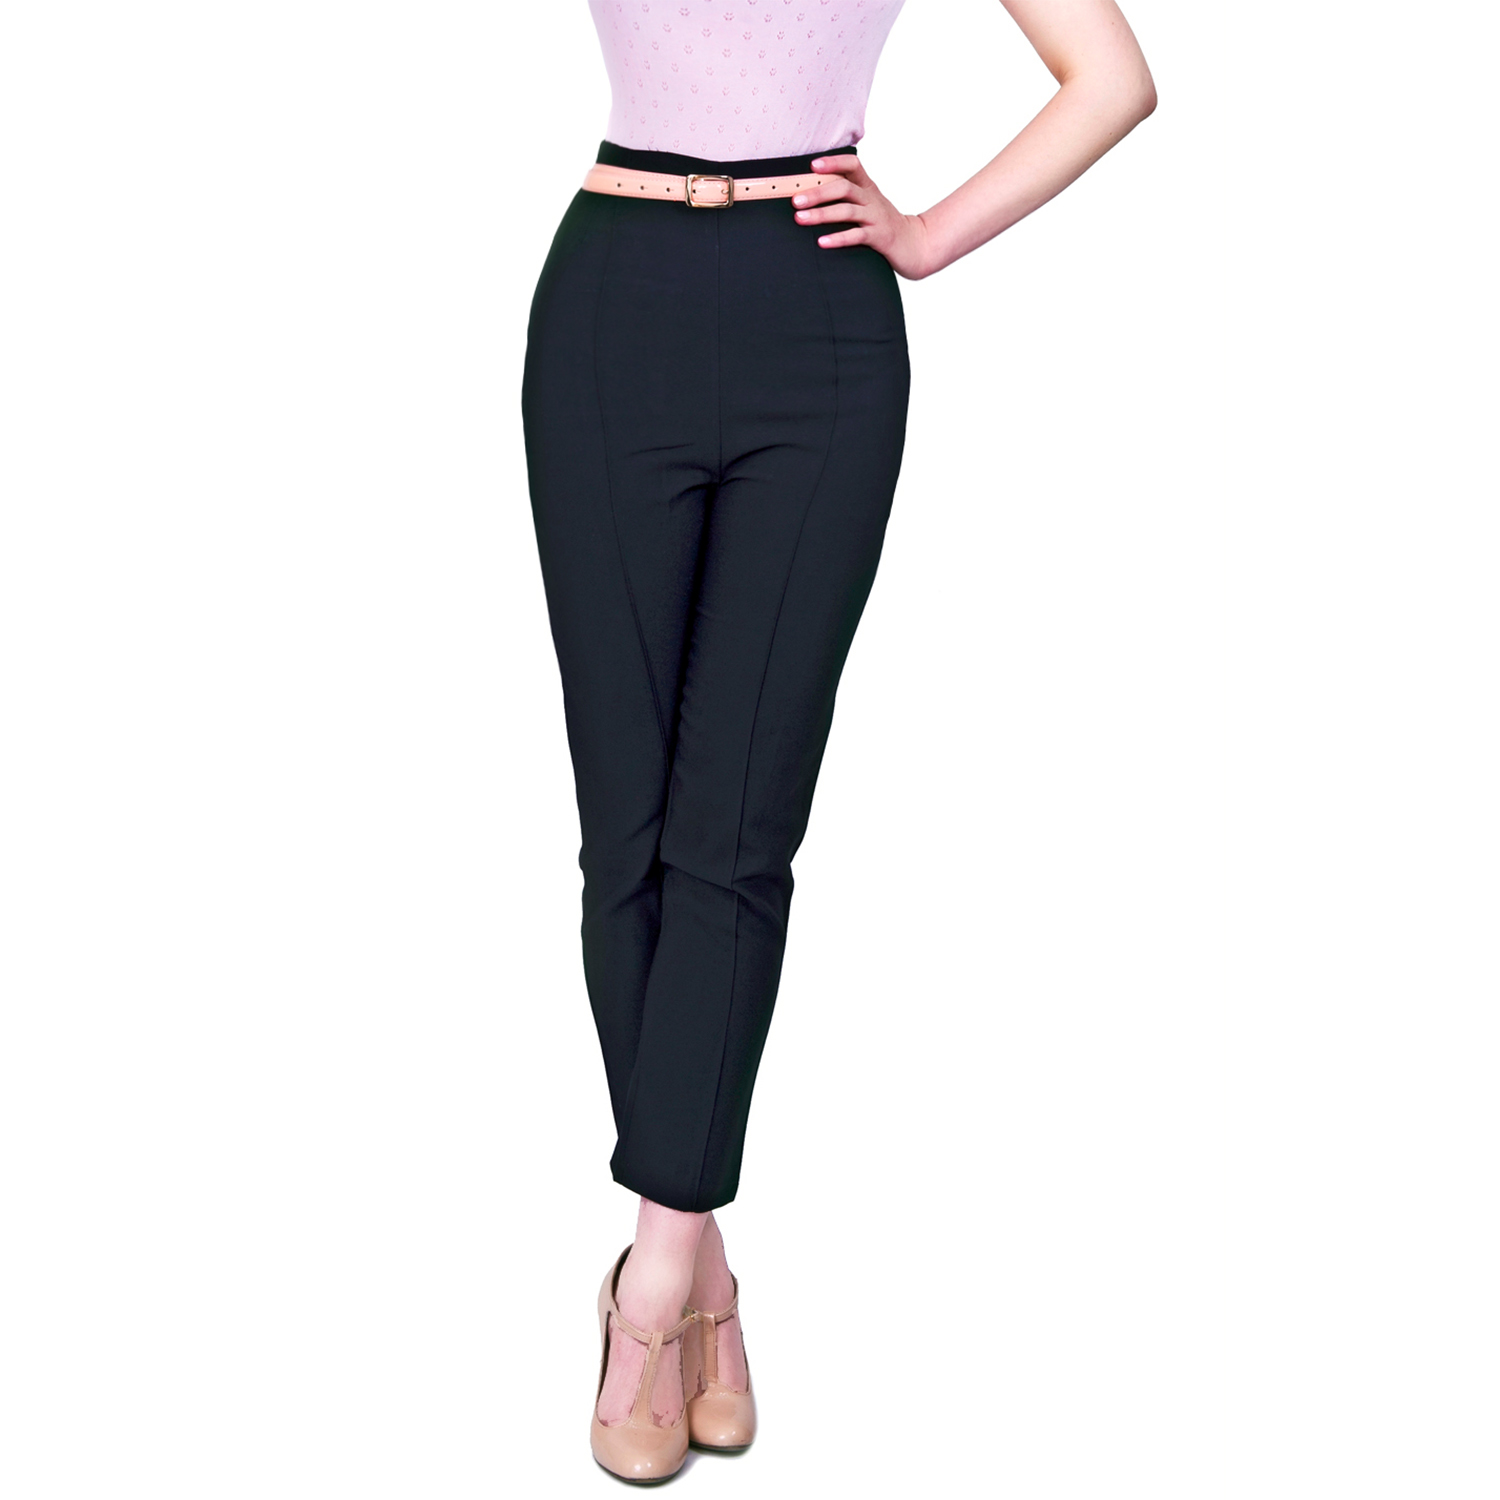 For sale is a pair of AG Adriano Goldschmied The Prima Mid Rise Cigarette Black Pants, 28R. Style: The Prima Mid Rise Cigarette Pants. These pants are in very good gently used condition. Color: Black. RENUAR Skinny Cigarette Straight Leg Pull On Pants Black& White Size 2. $